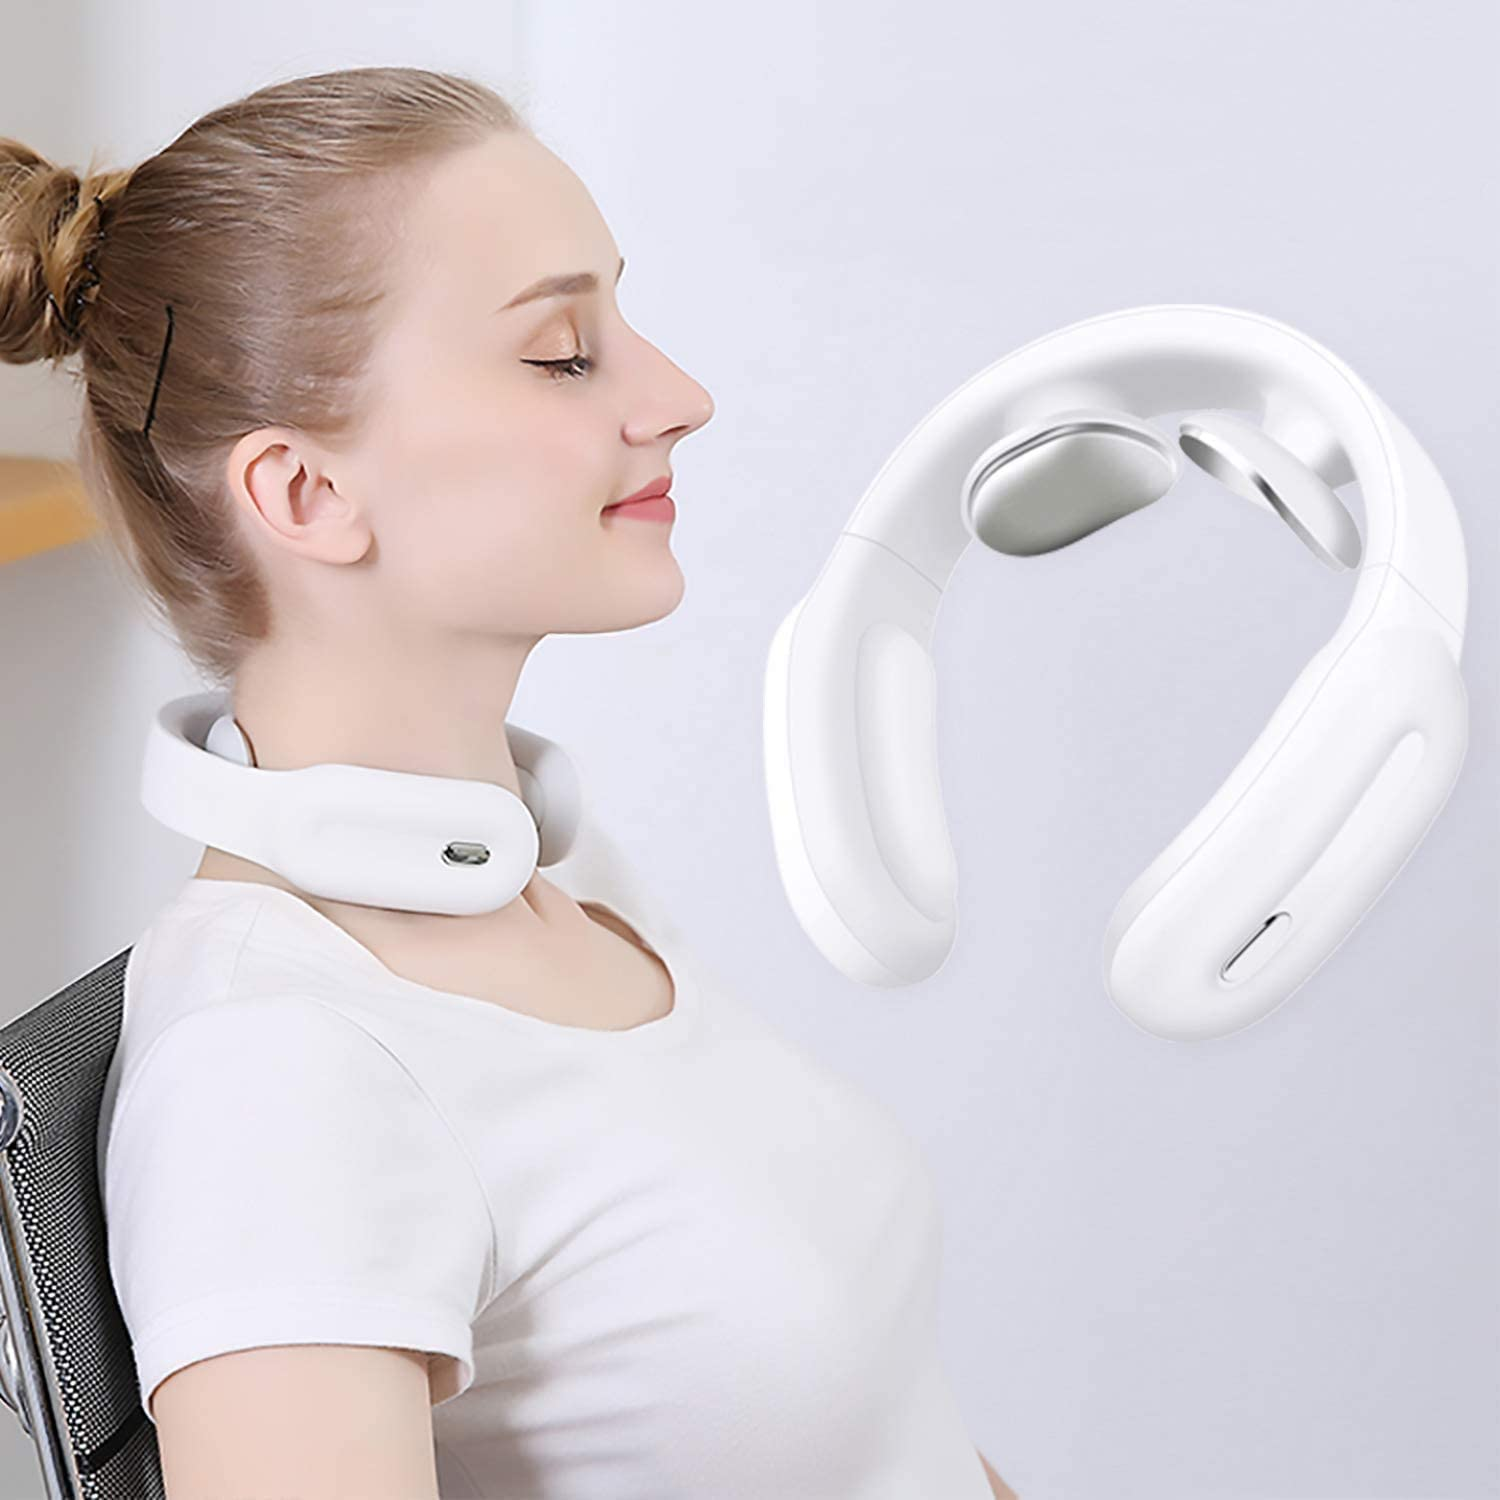 Neck Massager with Heat ,Cordless Intelligent Portable ,4D Neck Massage Equipment with 3 Modes 18 Levels Smart Deep Tissue Trigger Point for Office, Home,Sport,Travel PGG-bro